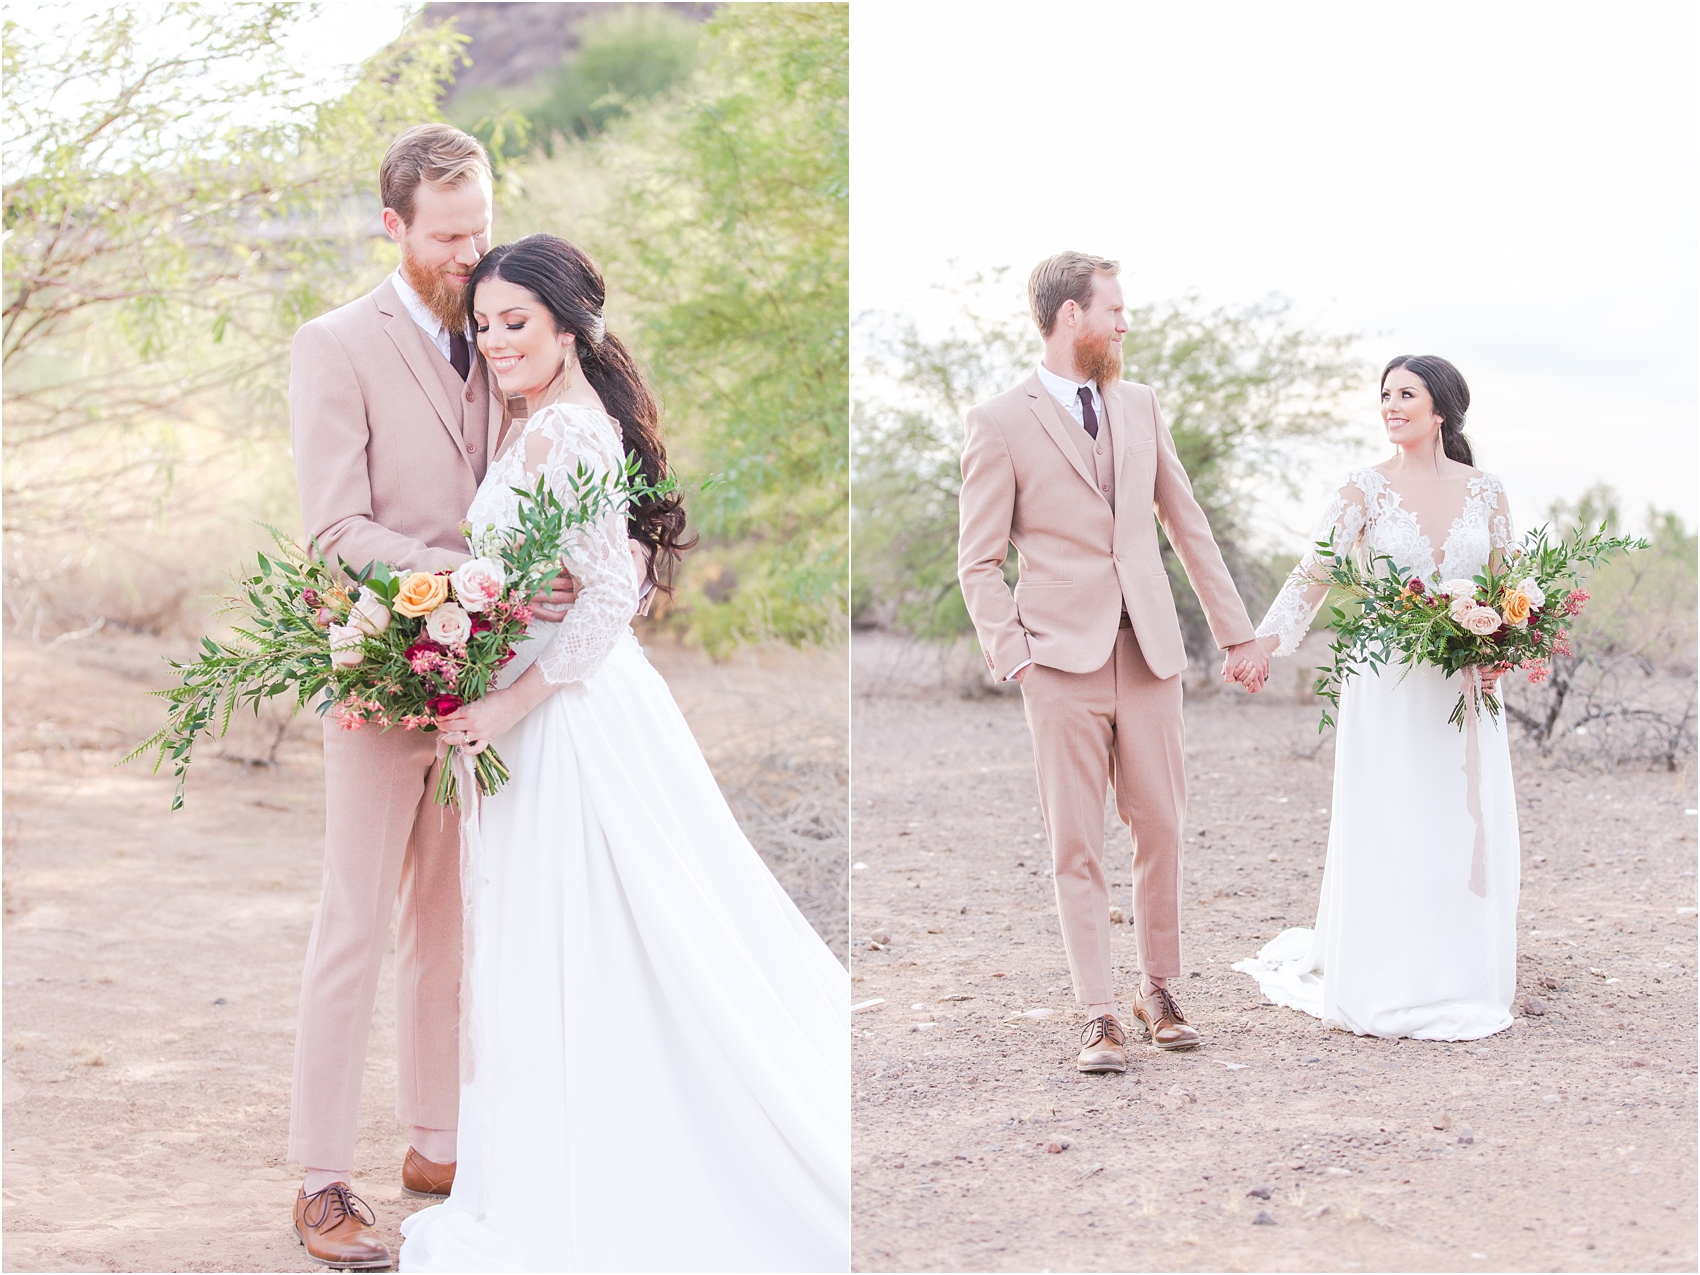 intimate-and-romantic-desert-wedding-photos-at-phoenix-marriott-tempe-at-the-buttes-in-tempe-arizona-by-courtney-carolyn-photography_0040.jpg